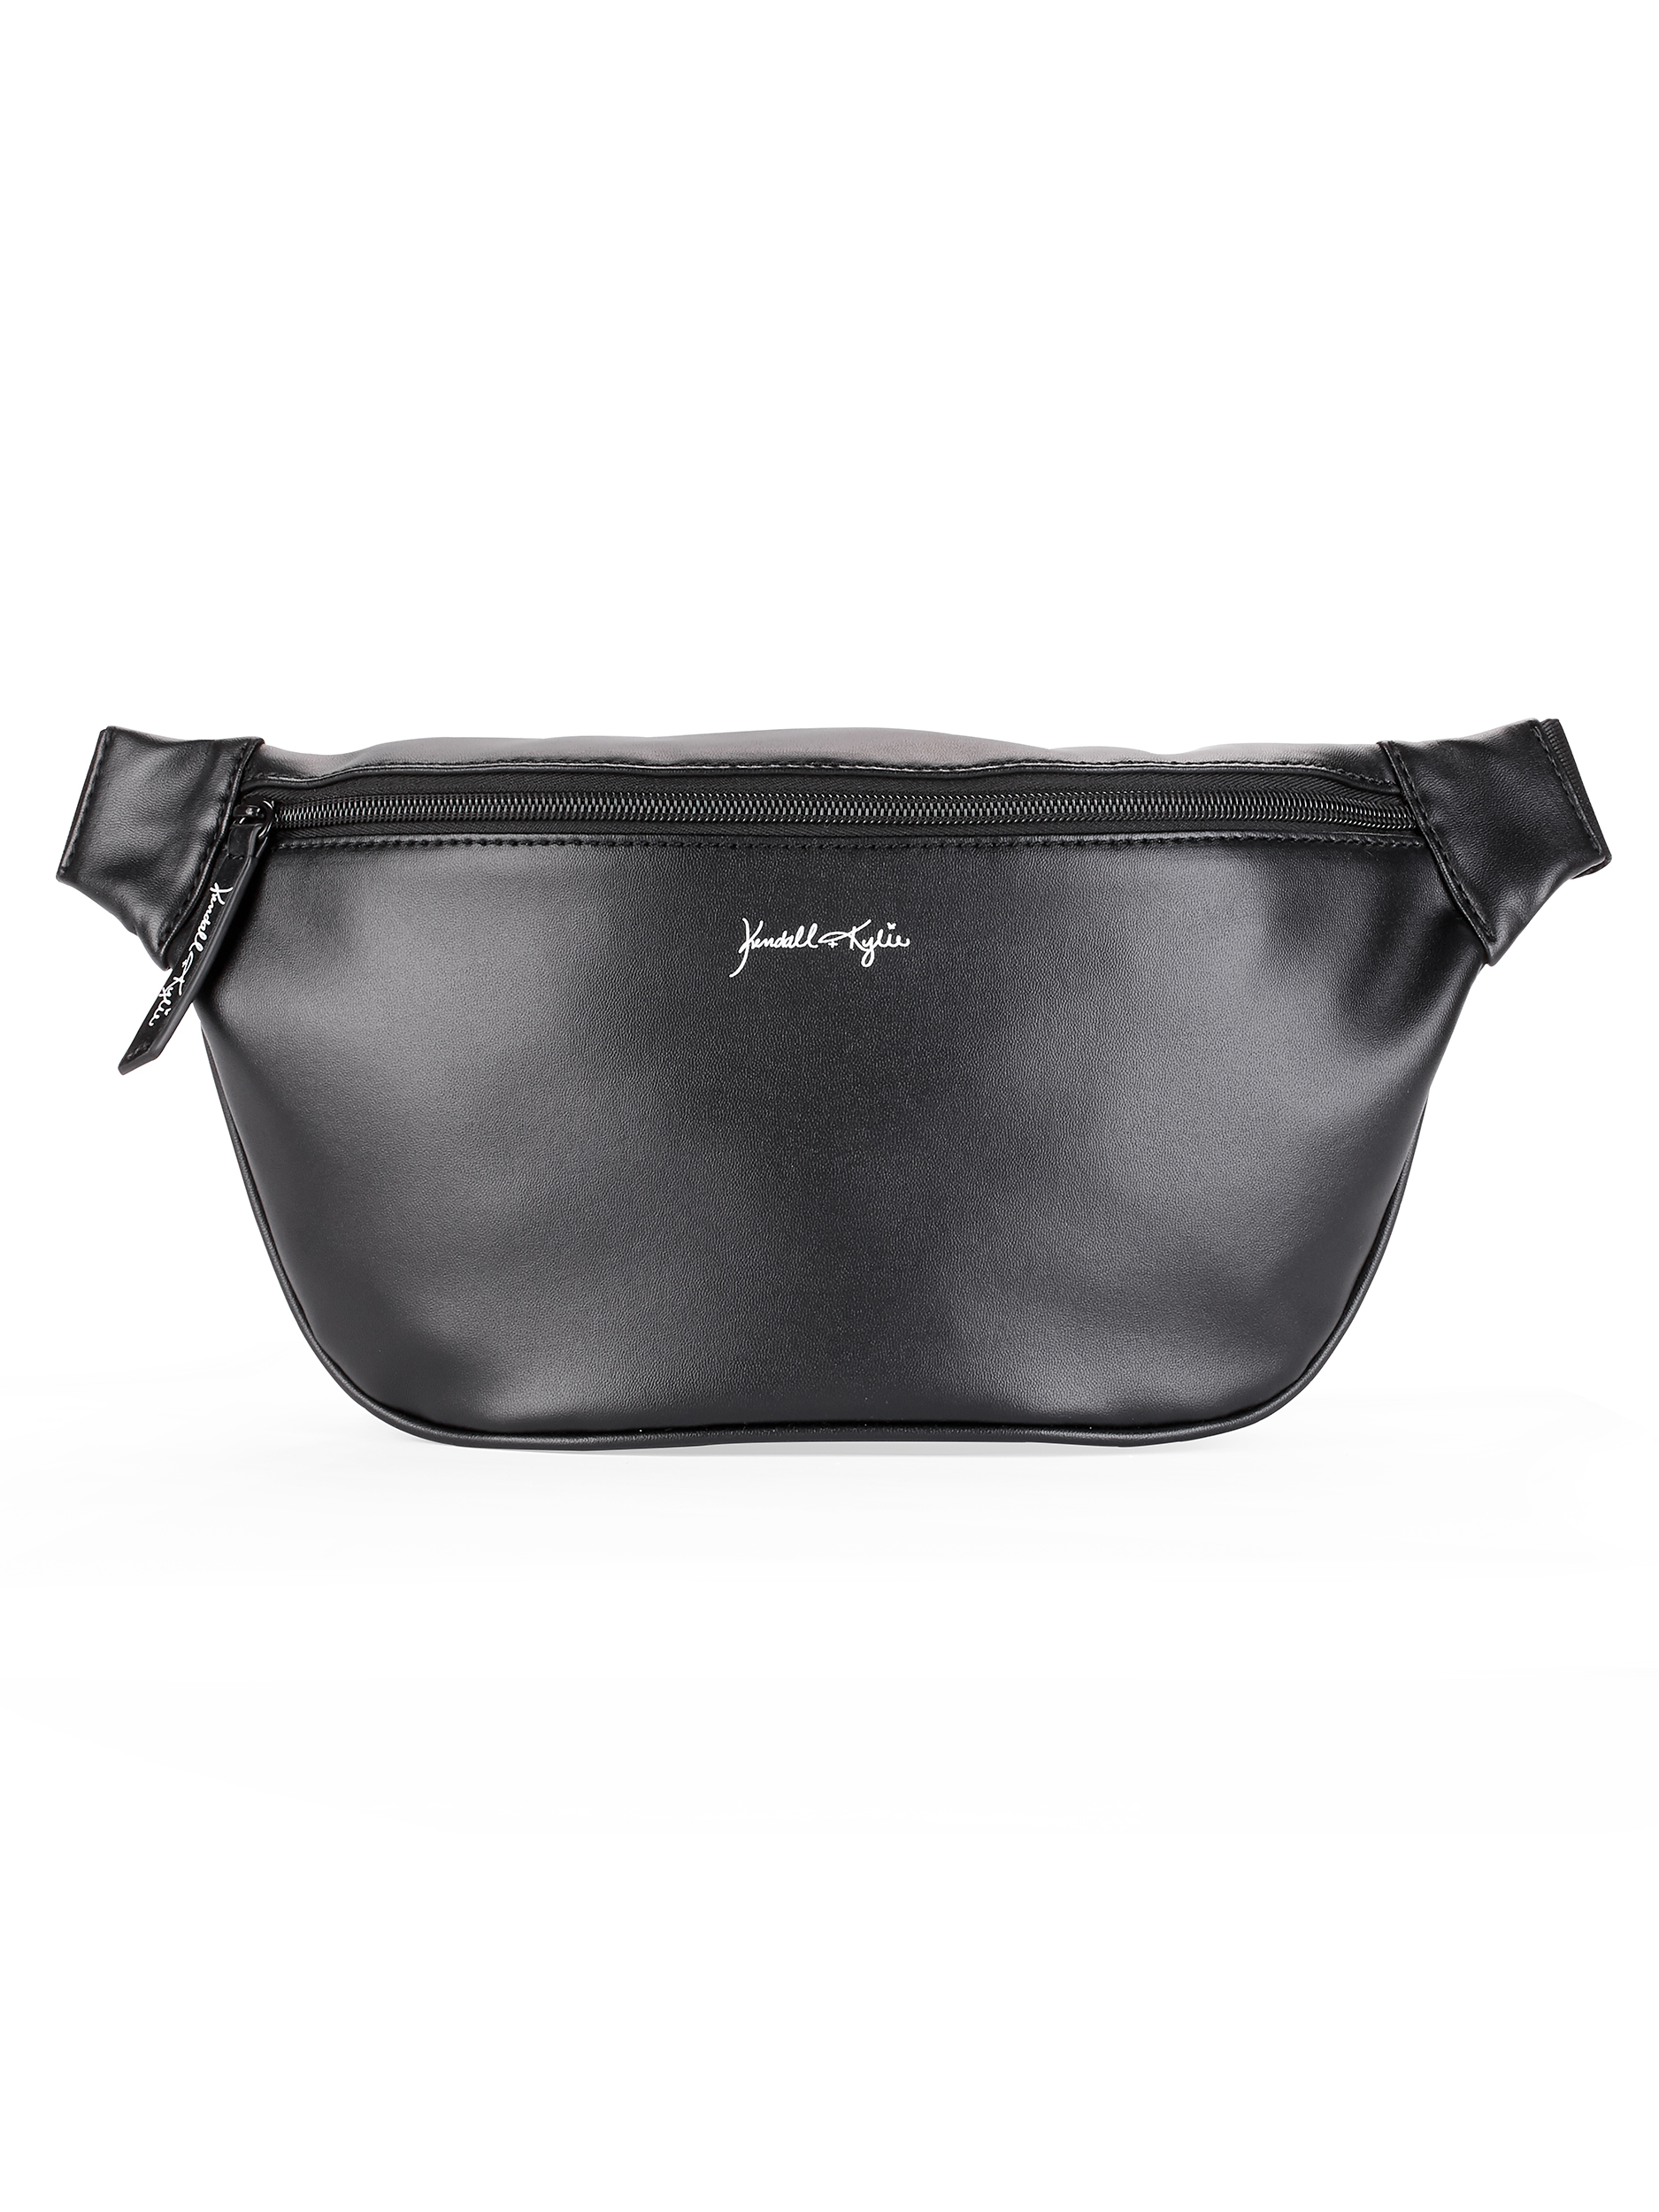 Kendall + Kylie for Walmart Large Fanny Pack